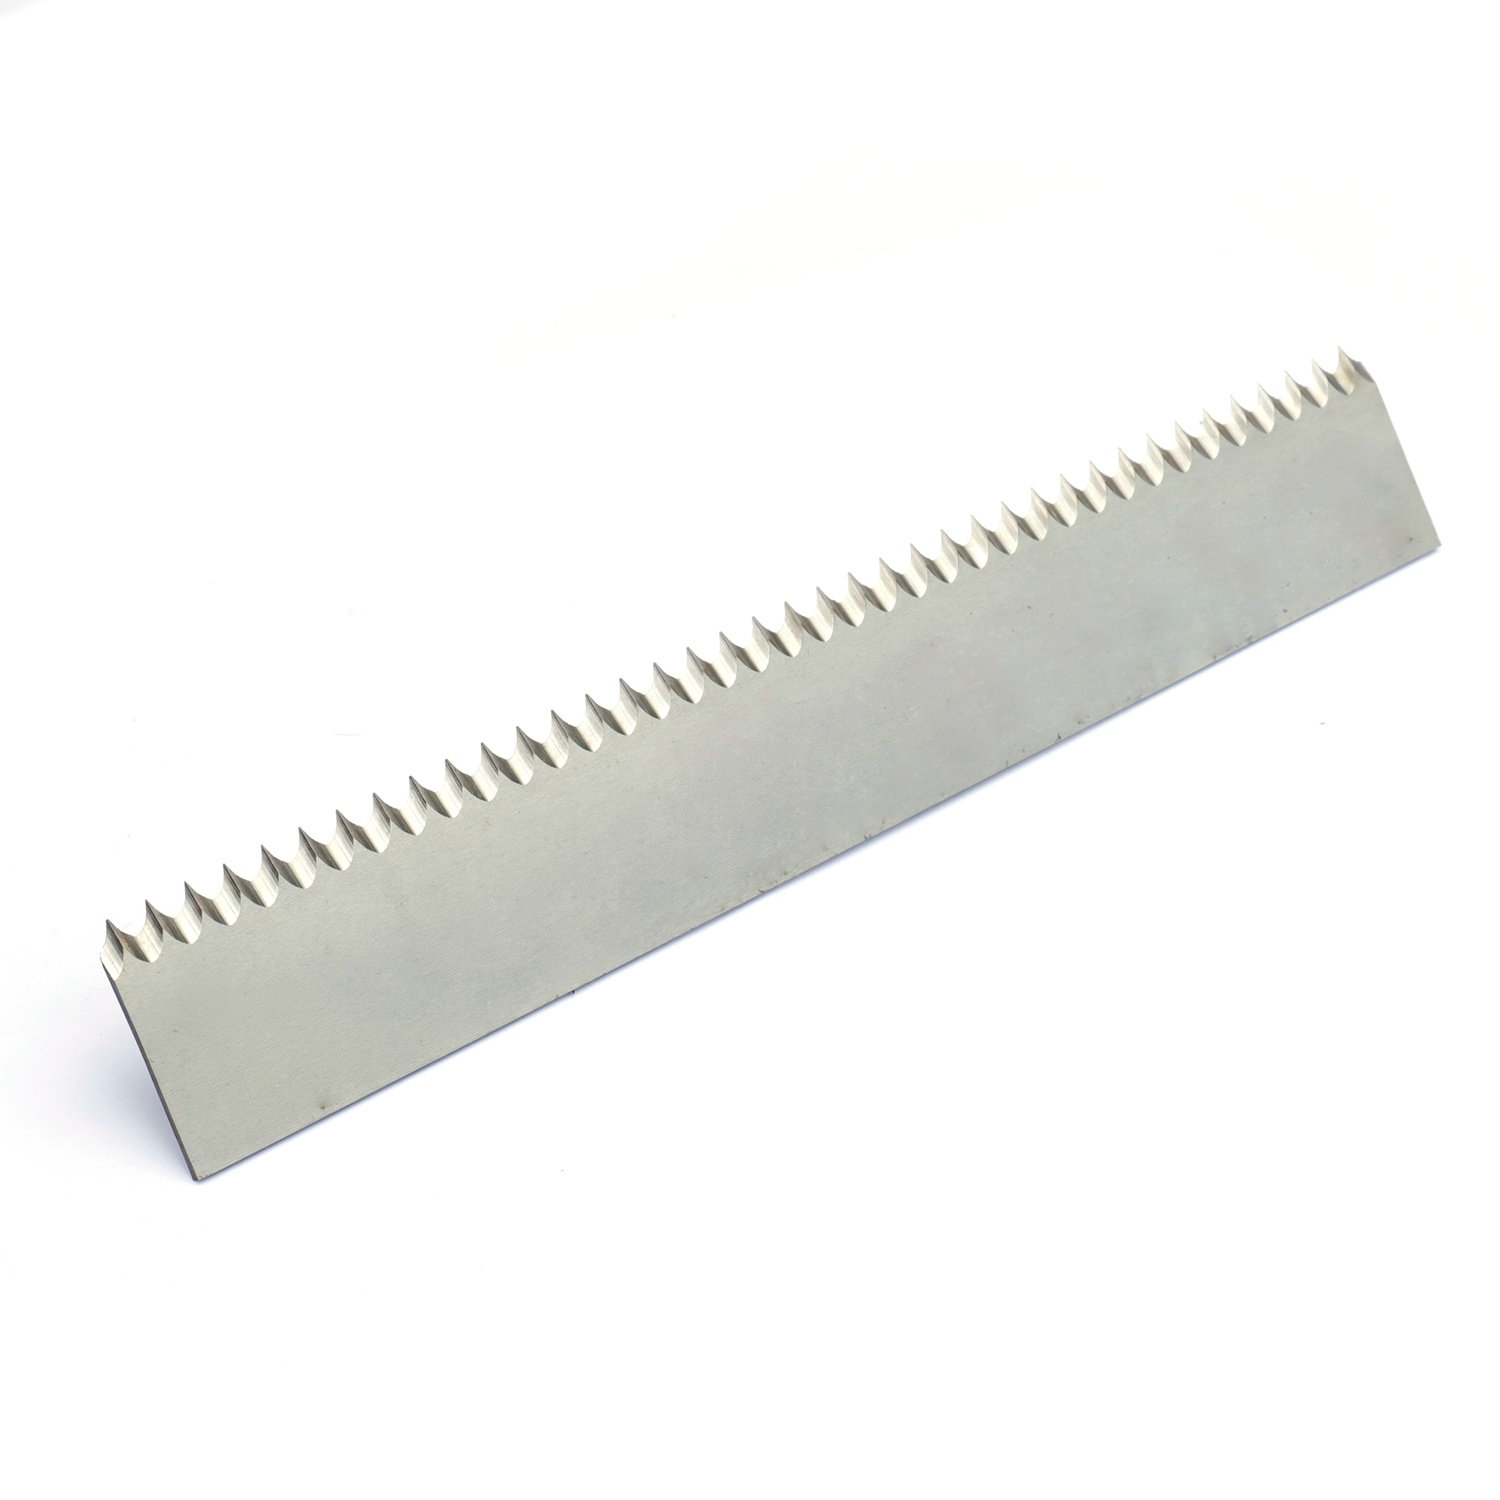 Toothed/Serrated Machine Knives/Blade for Belt Tape Sealing Machines